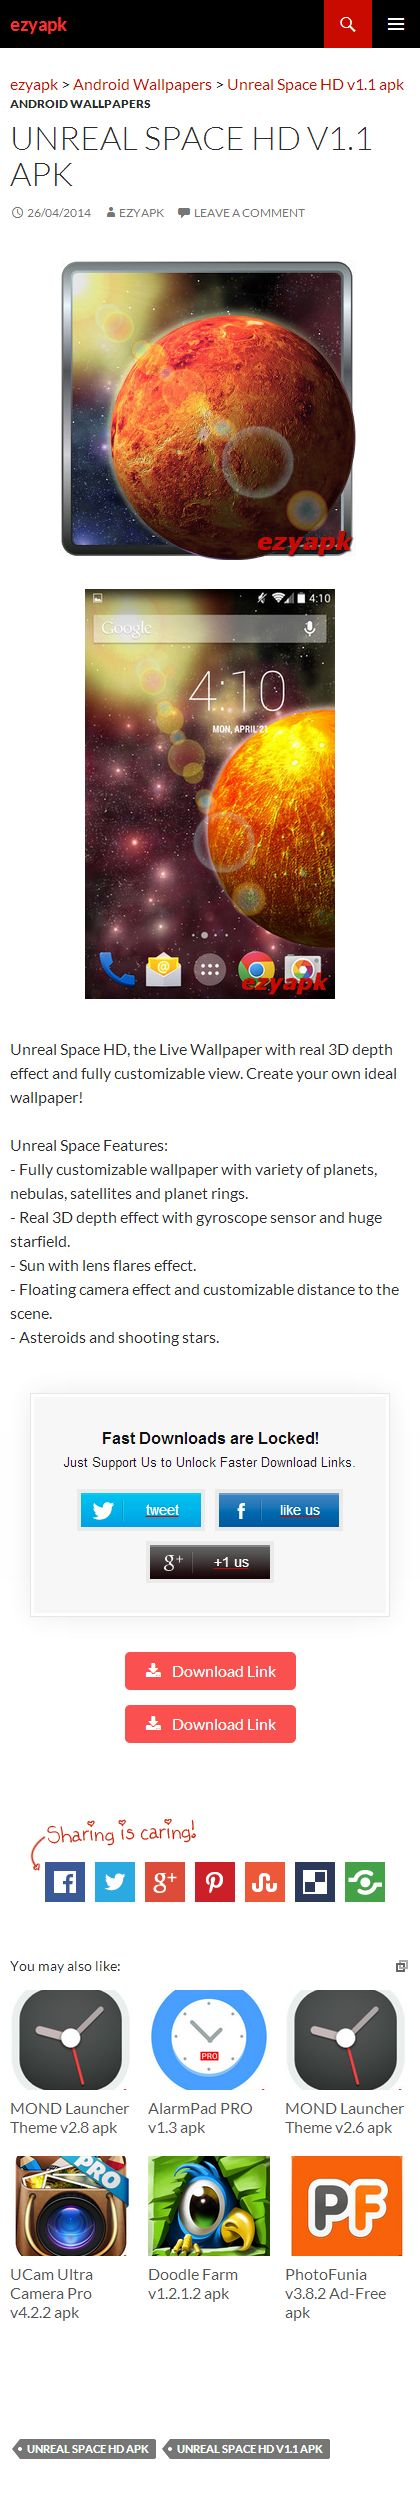 Unreal Space HD v1.1 apk Android apps